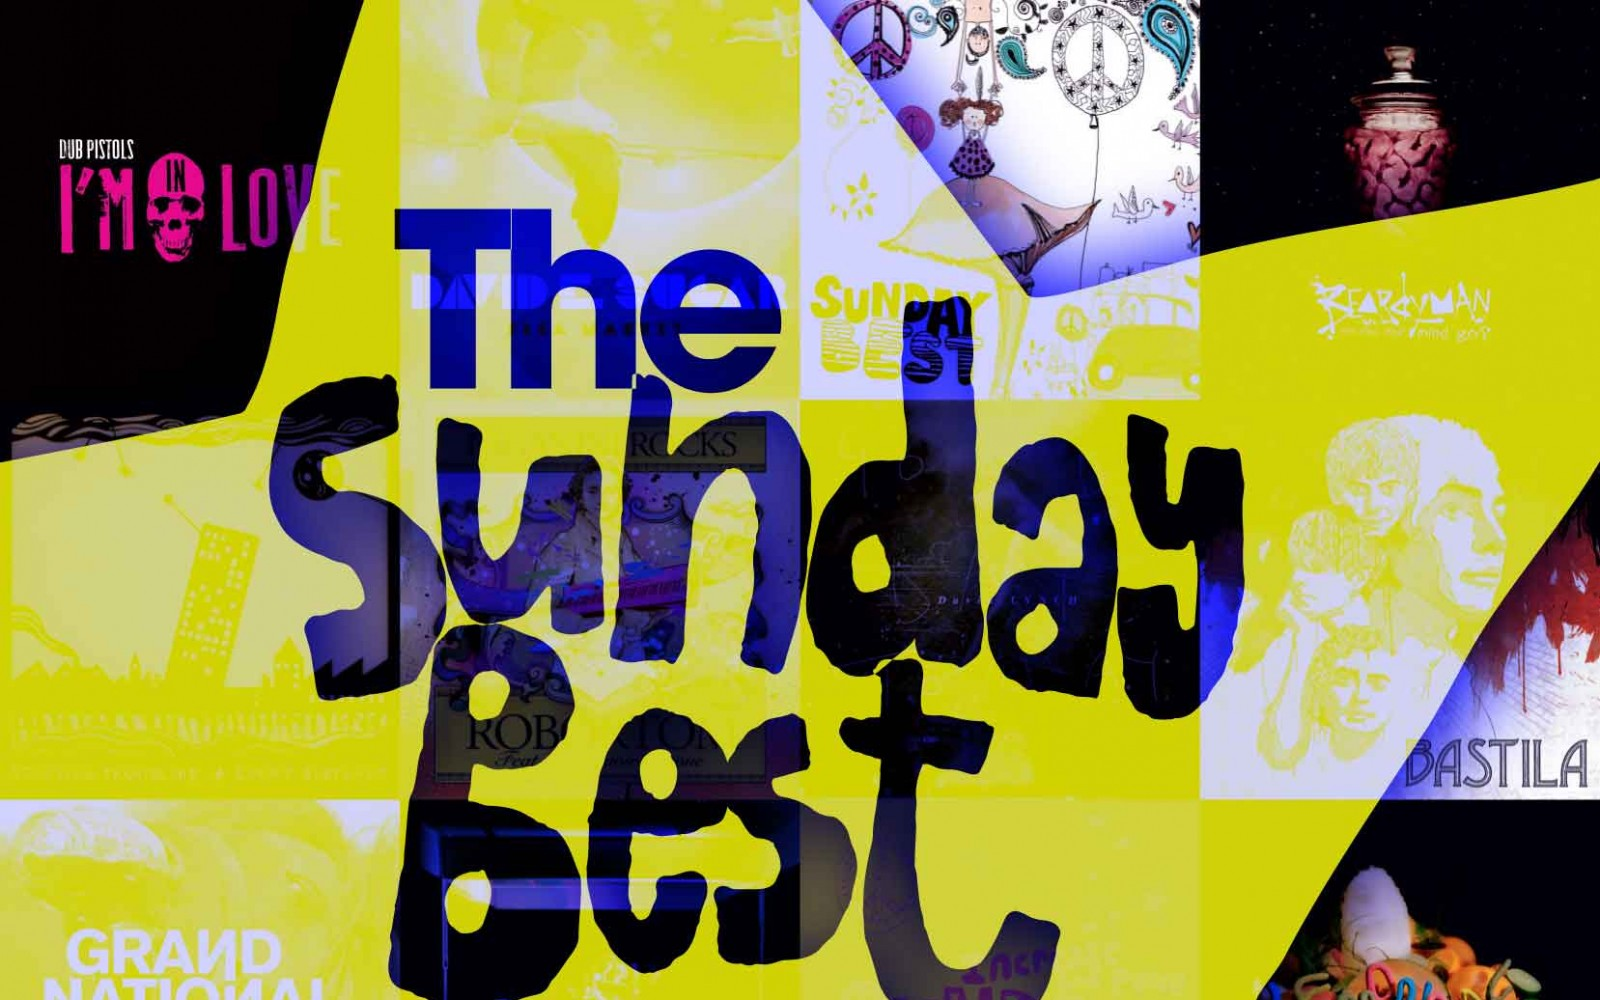 SBESTCD48 - VARIOUS ARTISTS - THE SUNDAY BEST REMIXED FEAR OF THEYDON